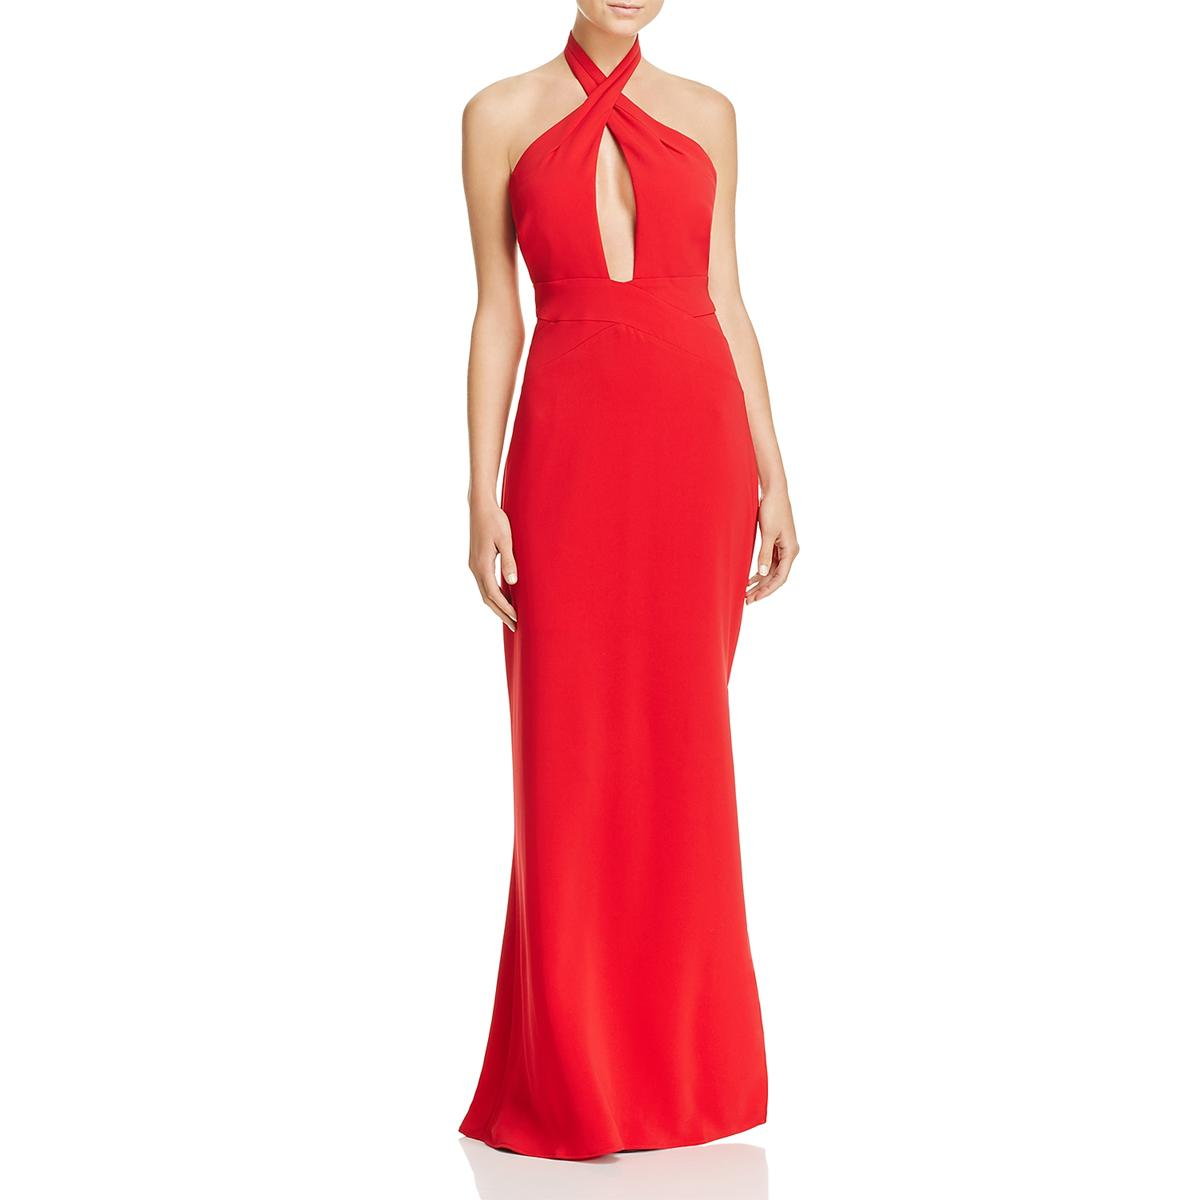 7c66585f37e3b Details about Laundry by Shelli Segal Womens Red Halter Formal Evening  Dress Gown 12 BHFO 7387